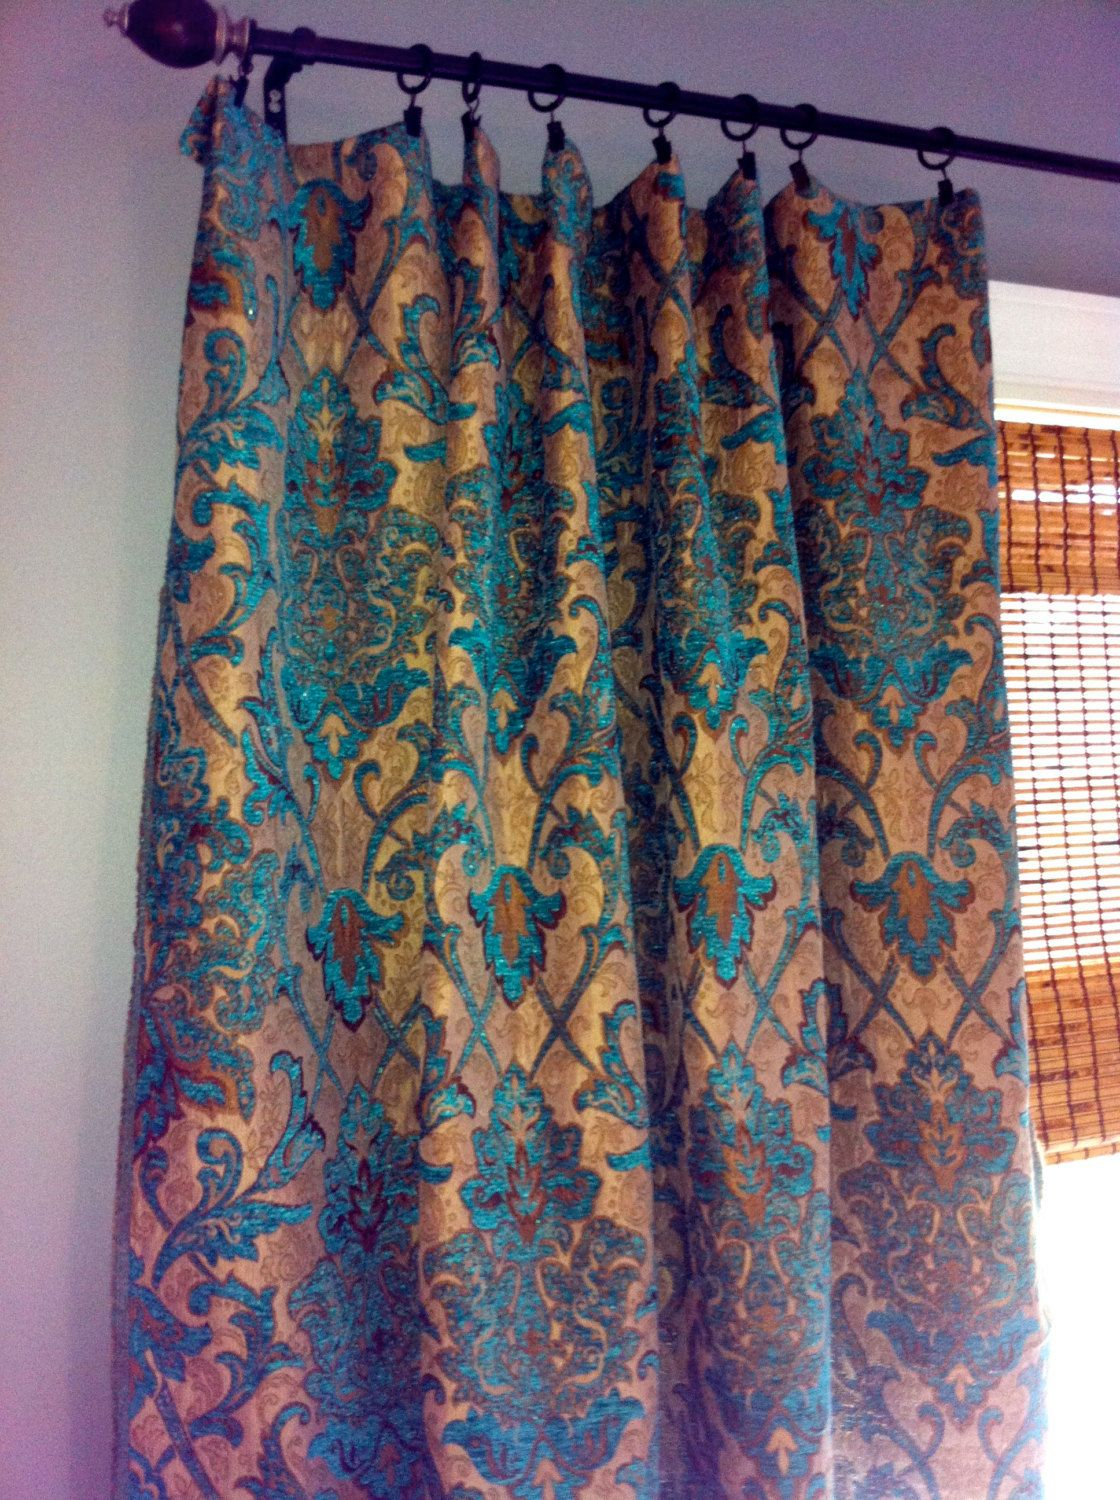 Teal Damask Curtain Panel/ Custom Drapery in Designer Chenille ...